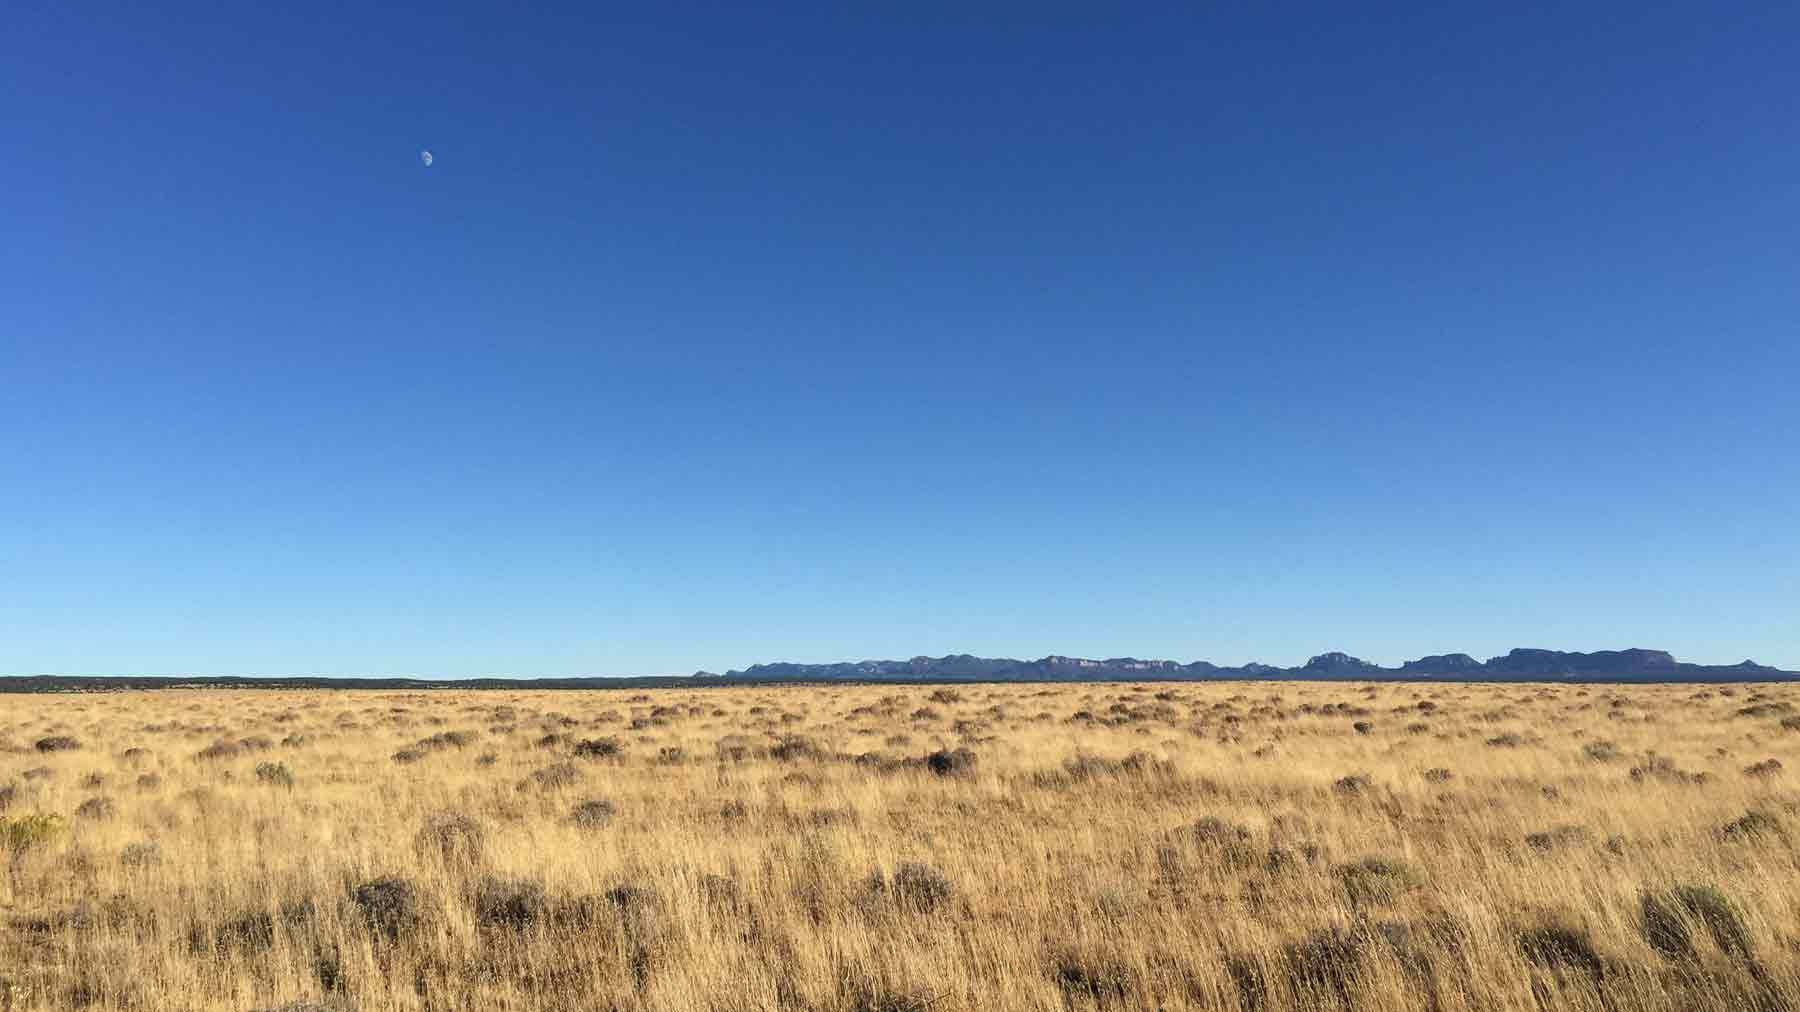 View of a dry grassy field towards distant mountains near the Lightning Field art installation in New Mexico